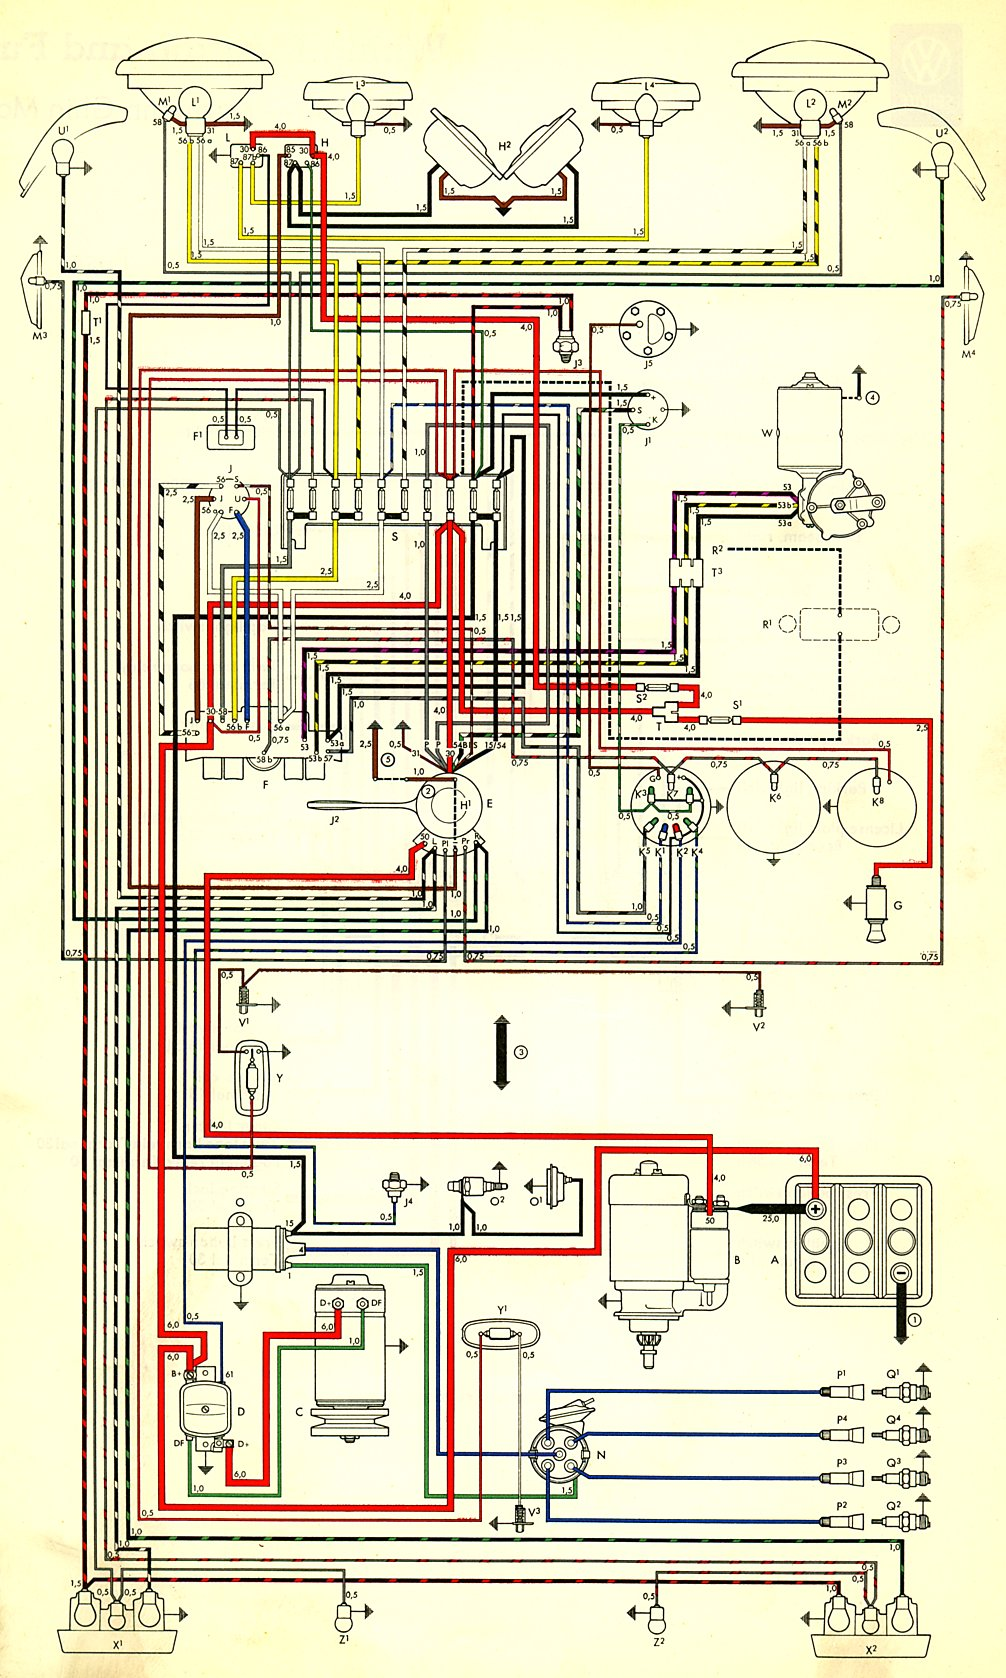 attractive lx torana wiring diagram photos electrical diagram rh itseo info lx torana tacho wiring diagram lx torana headlight wiring diagram